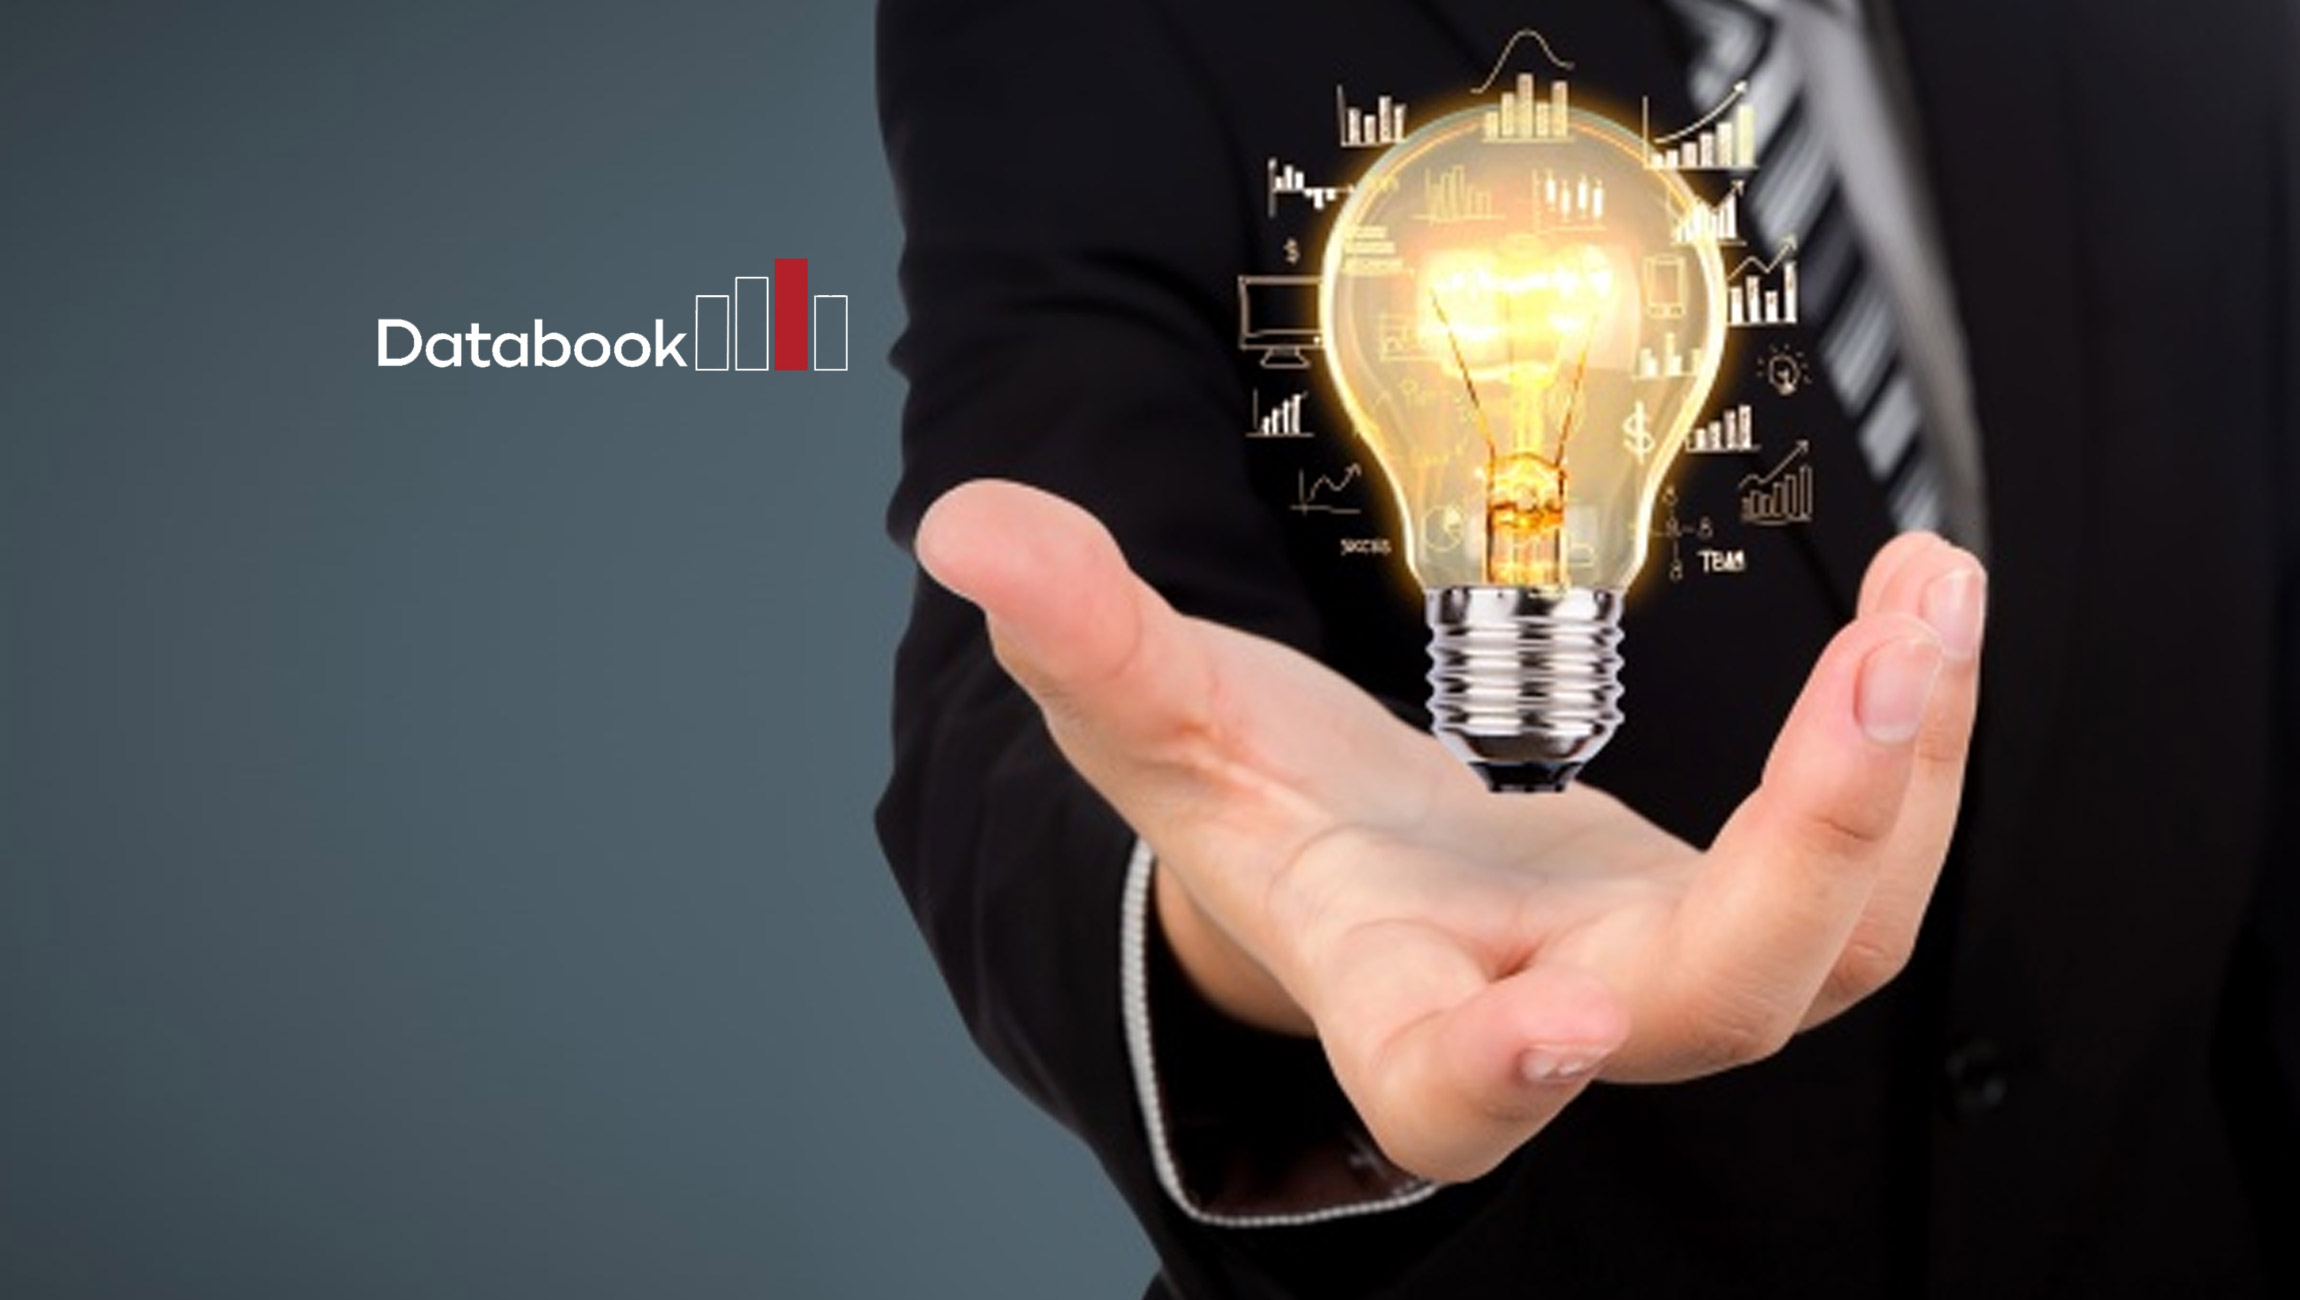 Databook Secures $5 Million Seed Funding from Threshold Ventures